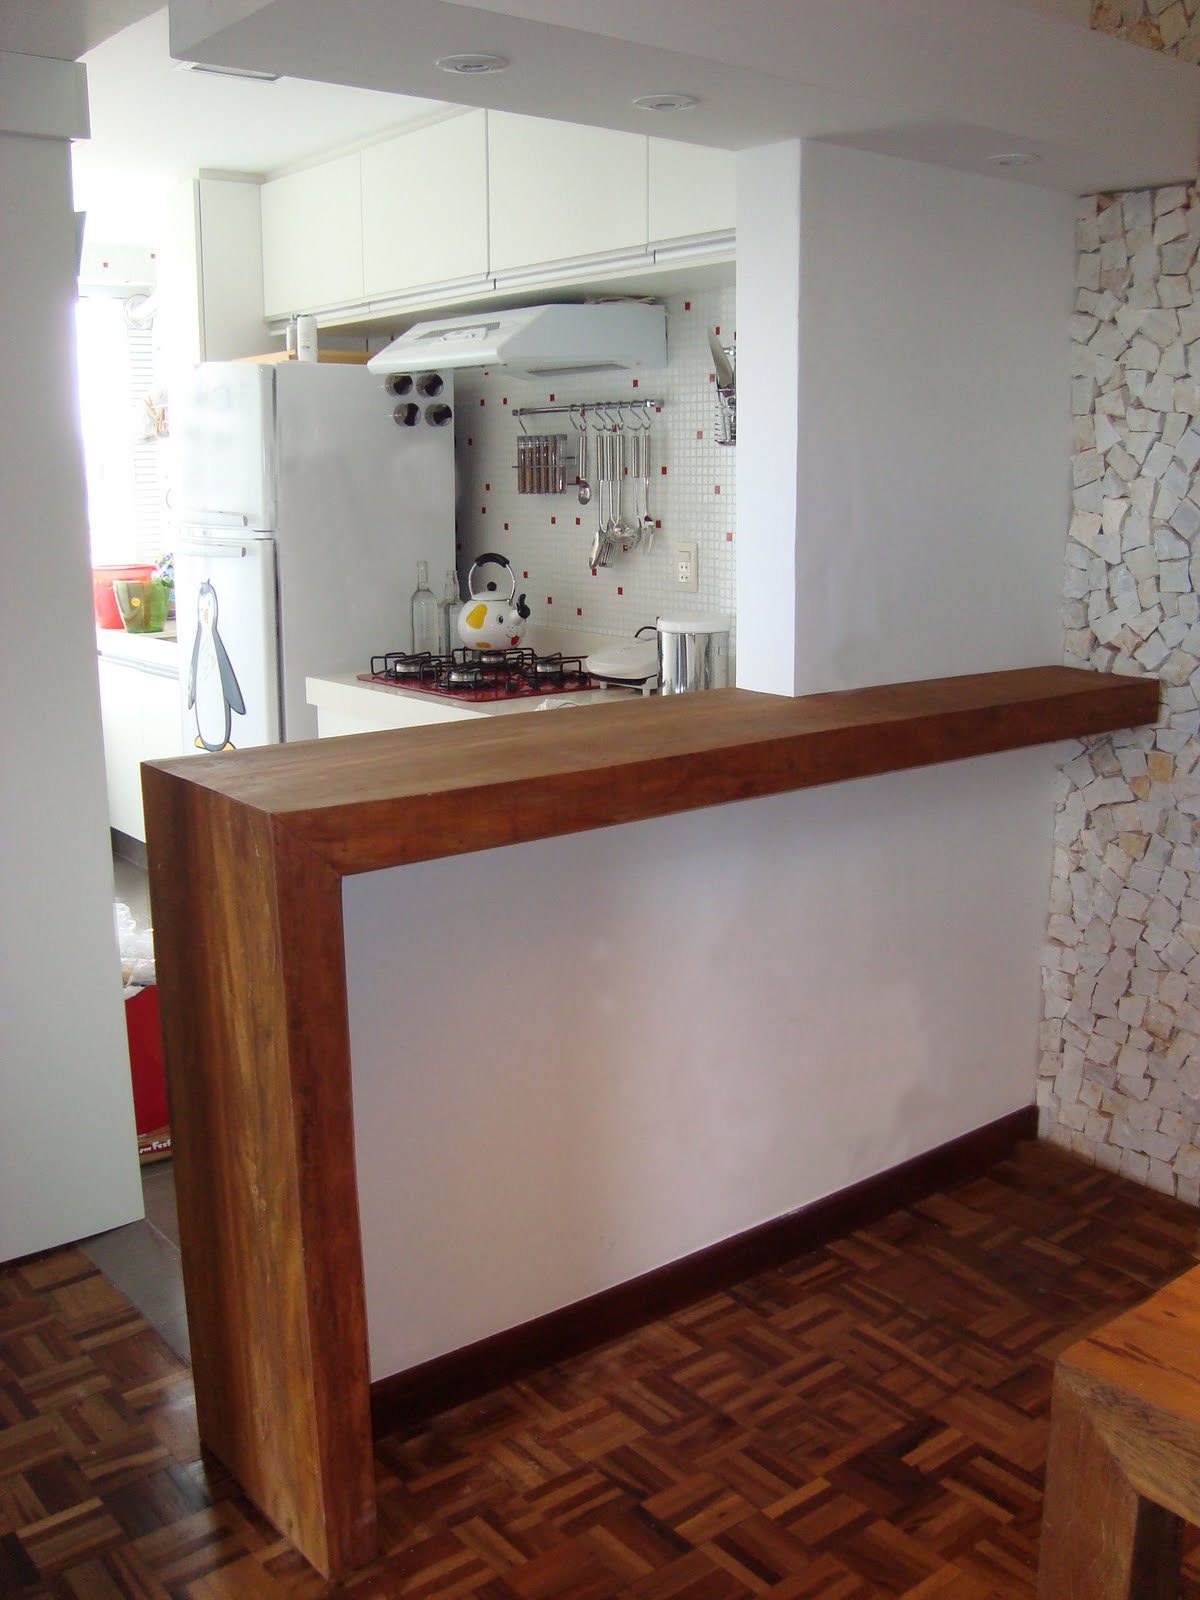 Pin Cozinhas Com Bancada De Madeira Its Monday But Its Ok Wallpaper on #673620 1200 1600